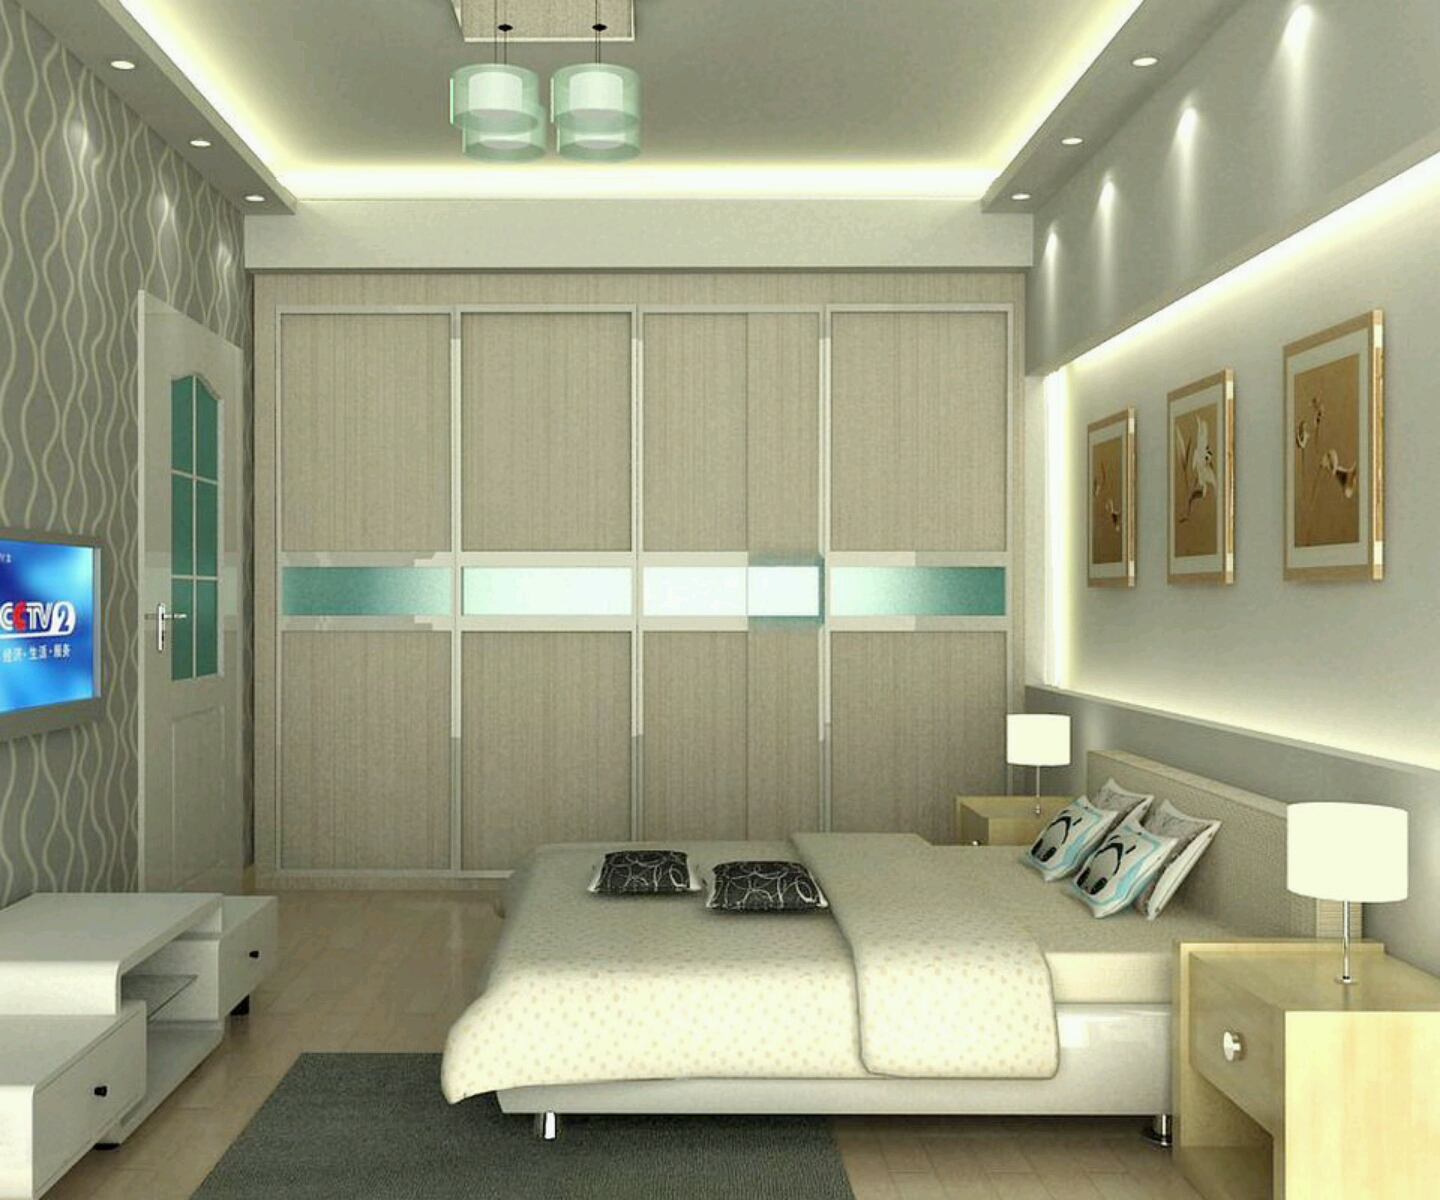 New home designs latest modern homes bedrooms designs for Bedroom designs latest